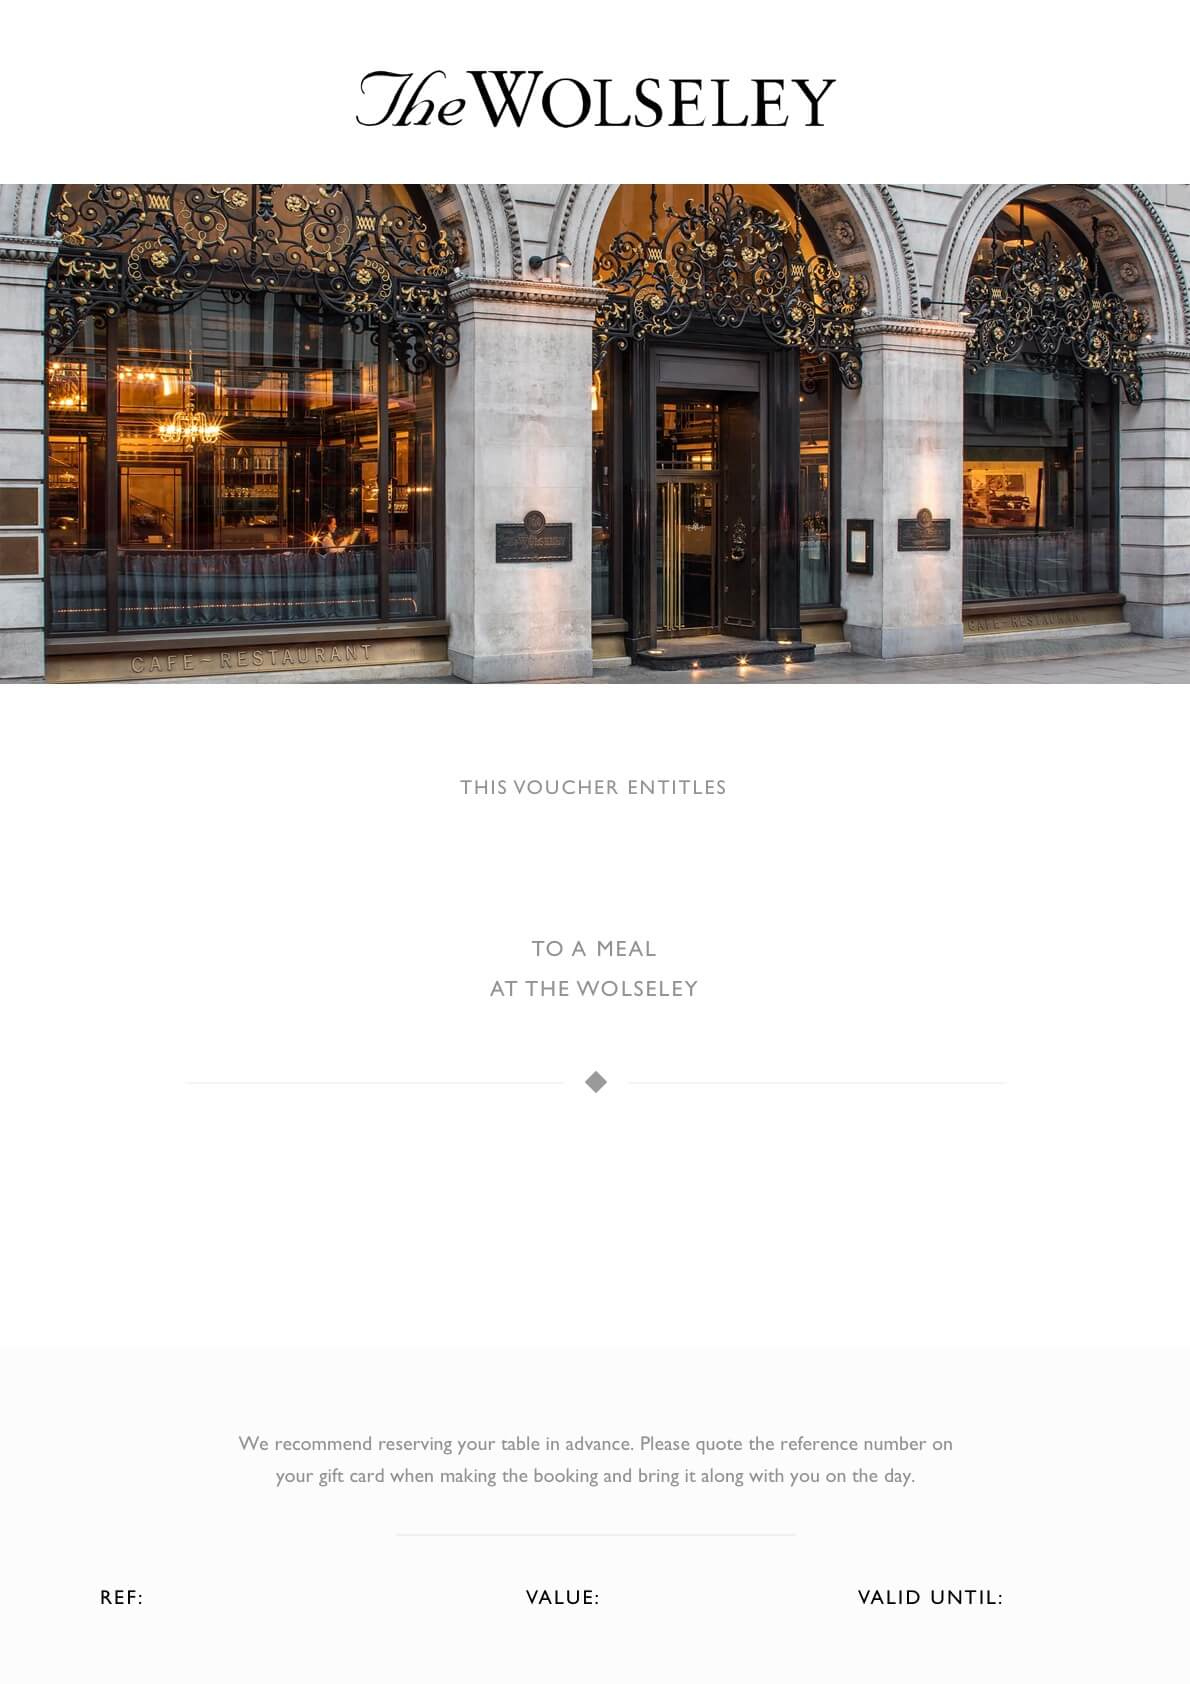 The wolseley gift card the wolseley voucher image negle Image collections